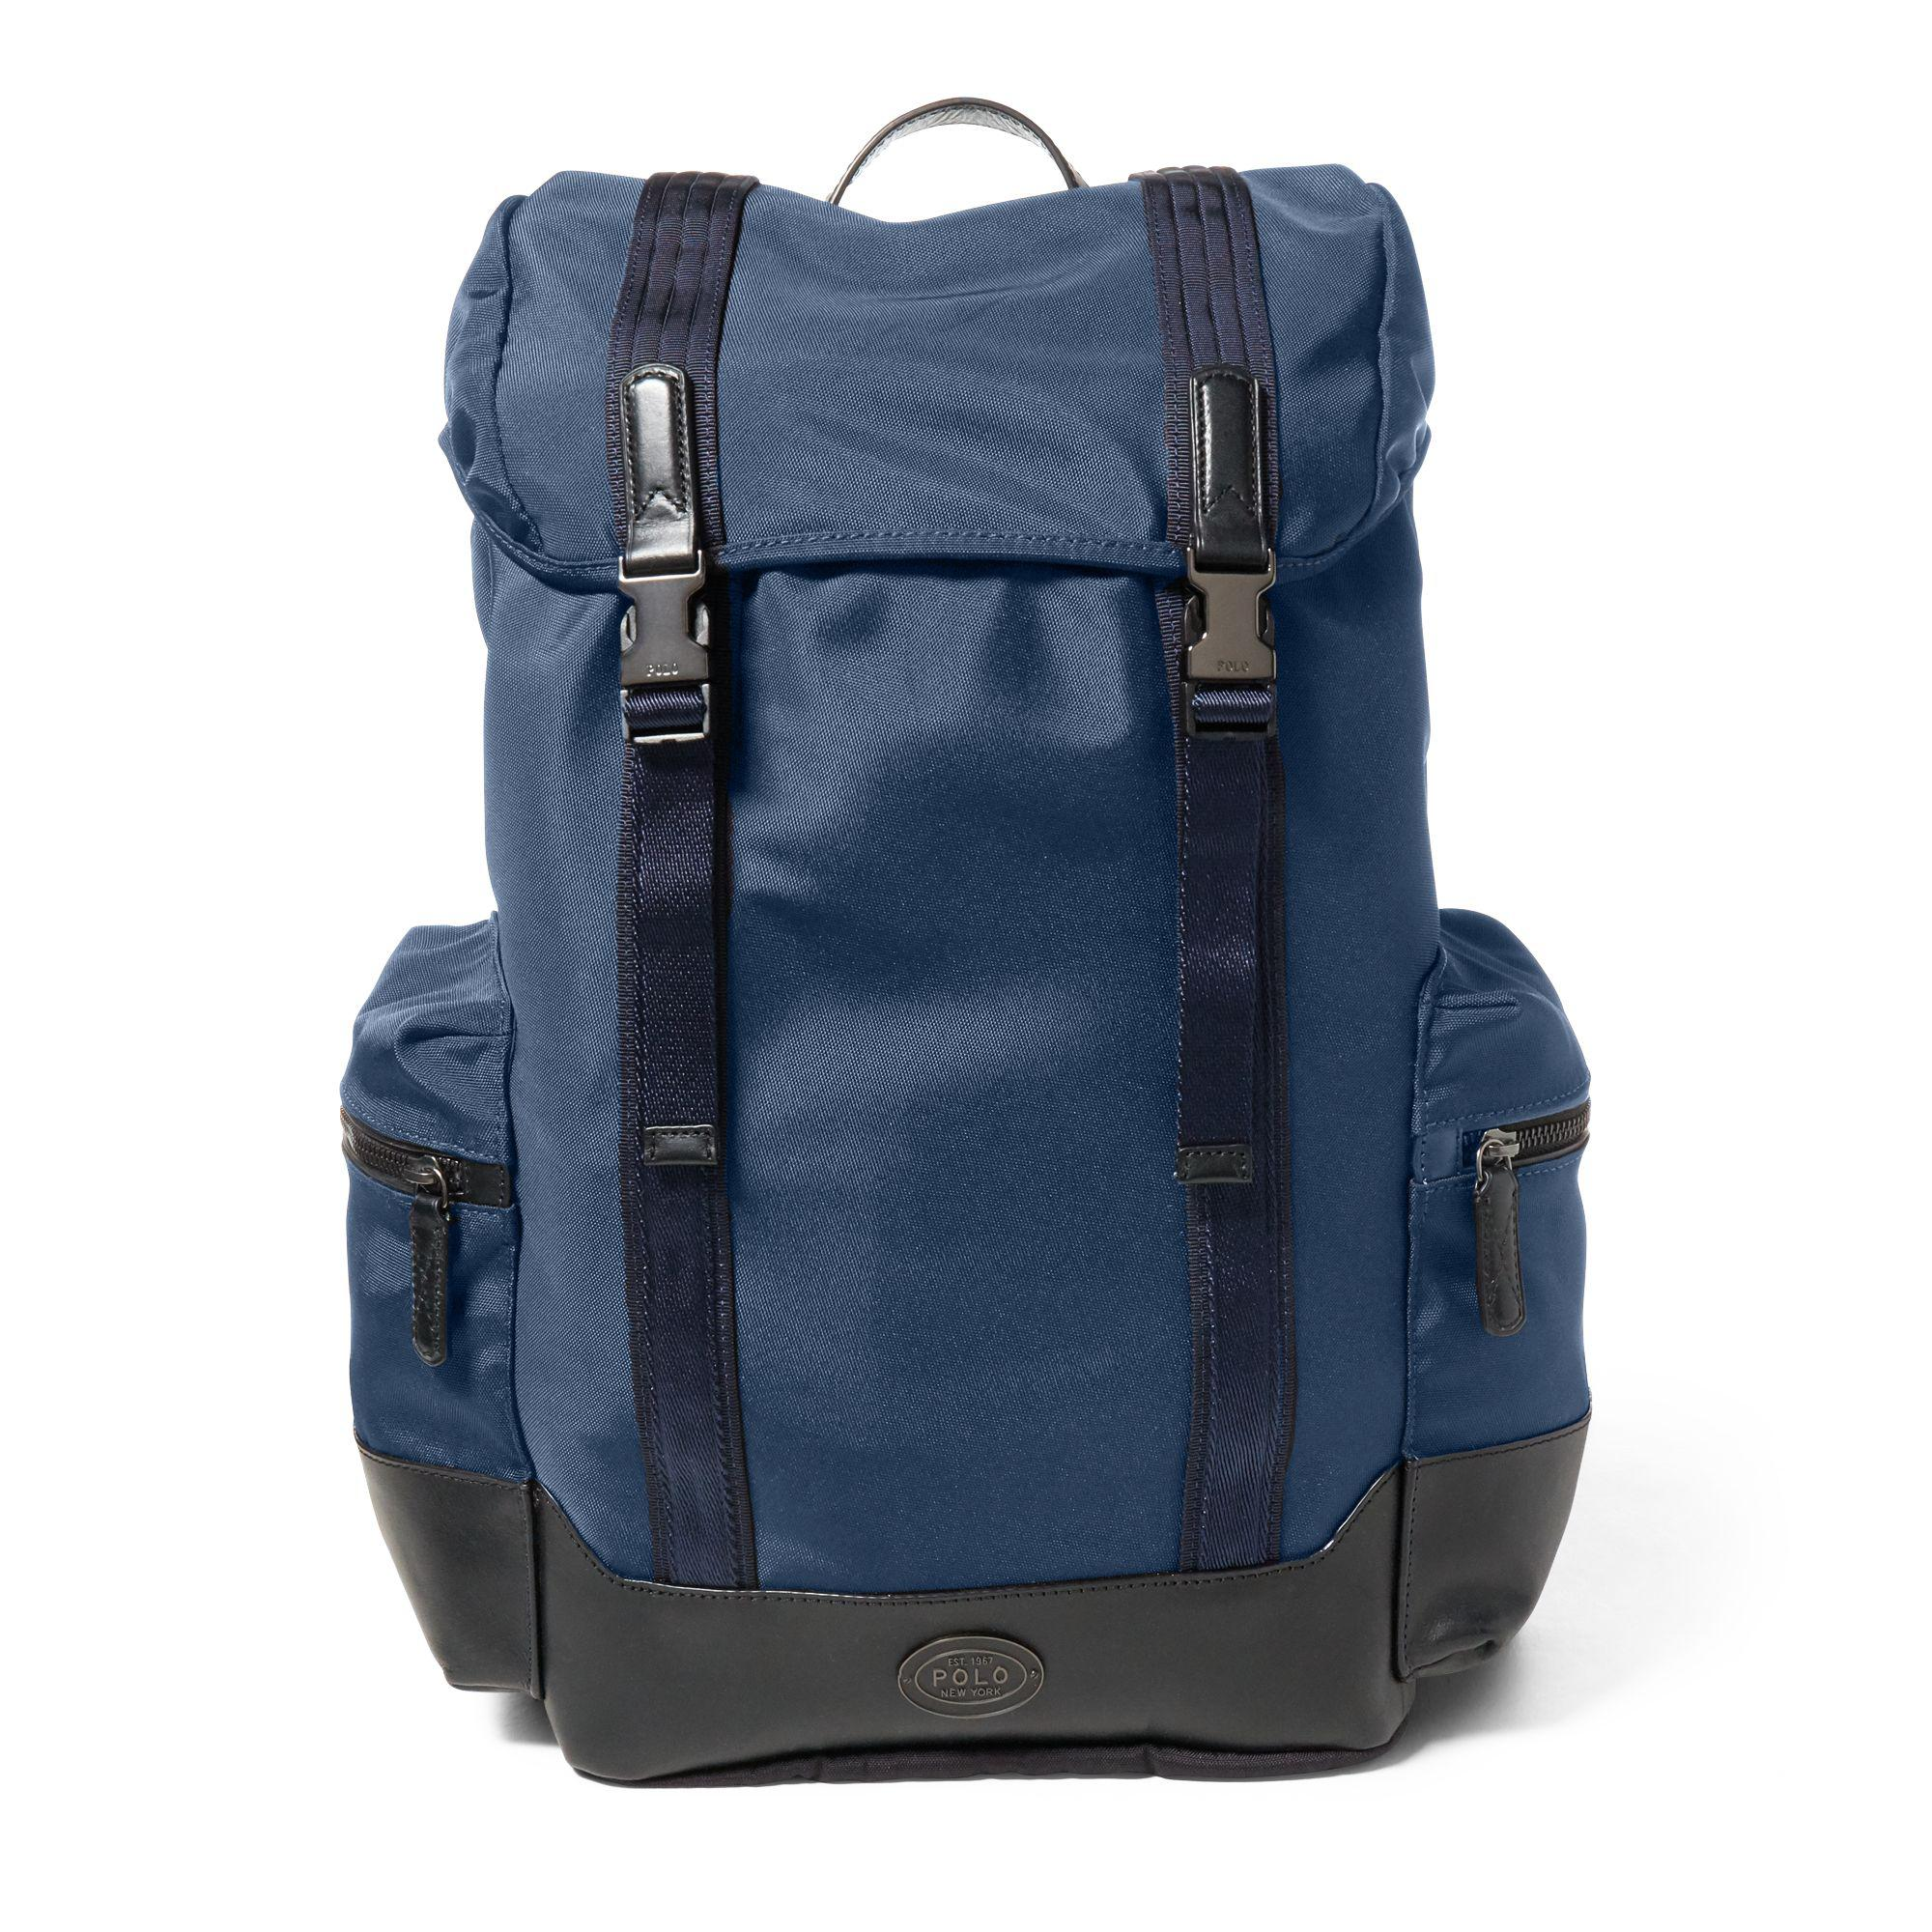 1cd8ff513e Polo Ralph Lauren Thompson Military Backpack in Blue for Men - Lyst